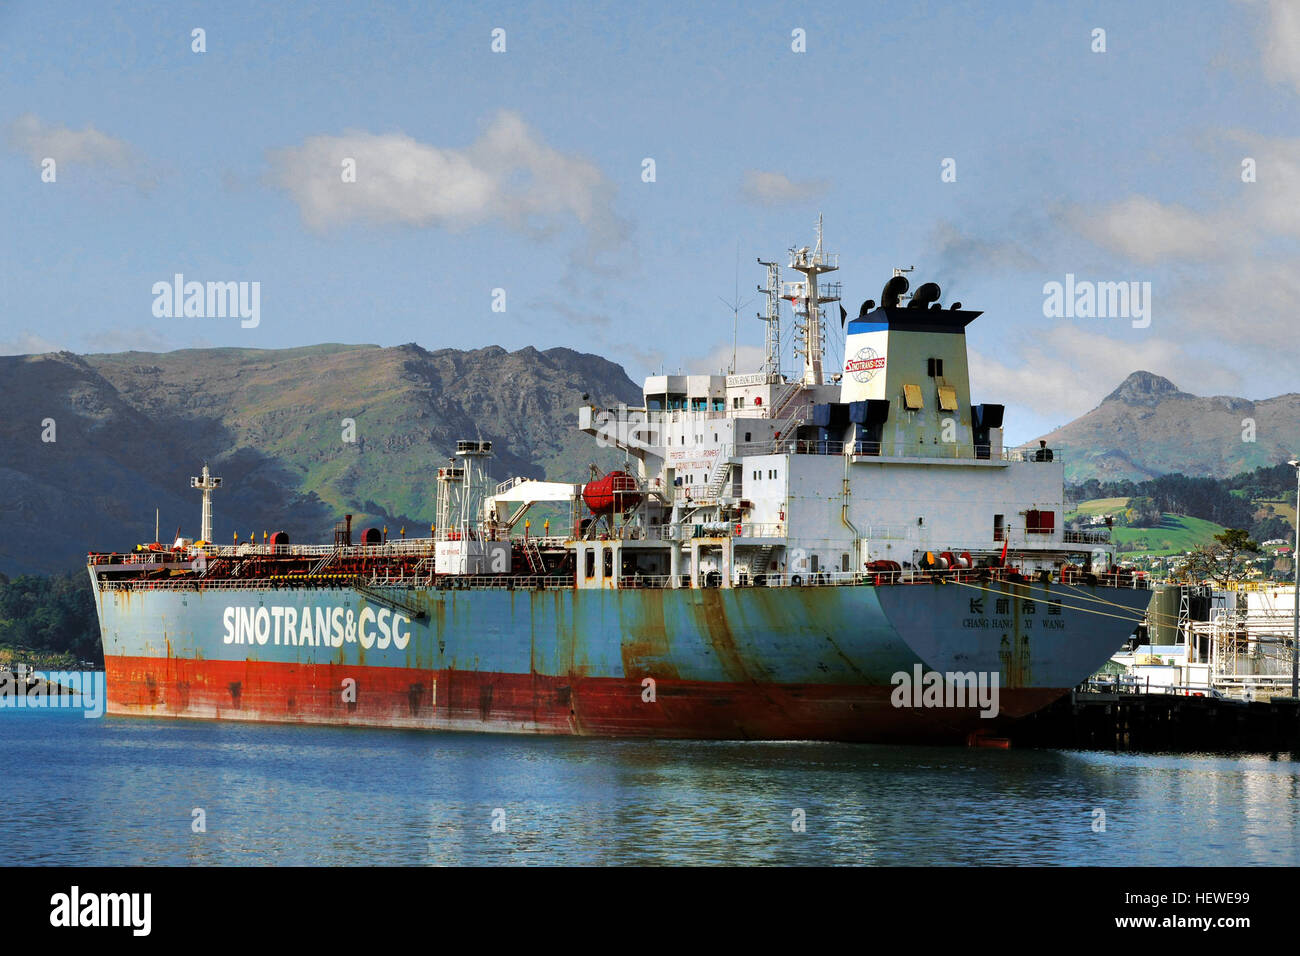 IMO: 9313175 MMSI: 413282000 Call Sign: BURJ Flag: China [CN] AIS Vessel Type: Tanker Gross Tonnage: 29588 Deadweight: - Stock Image